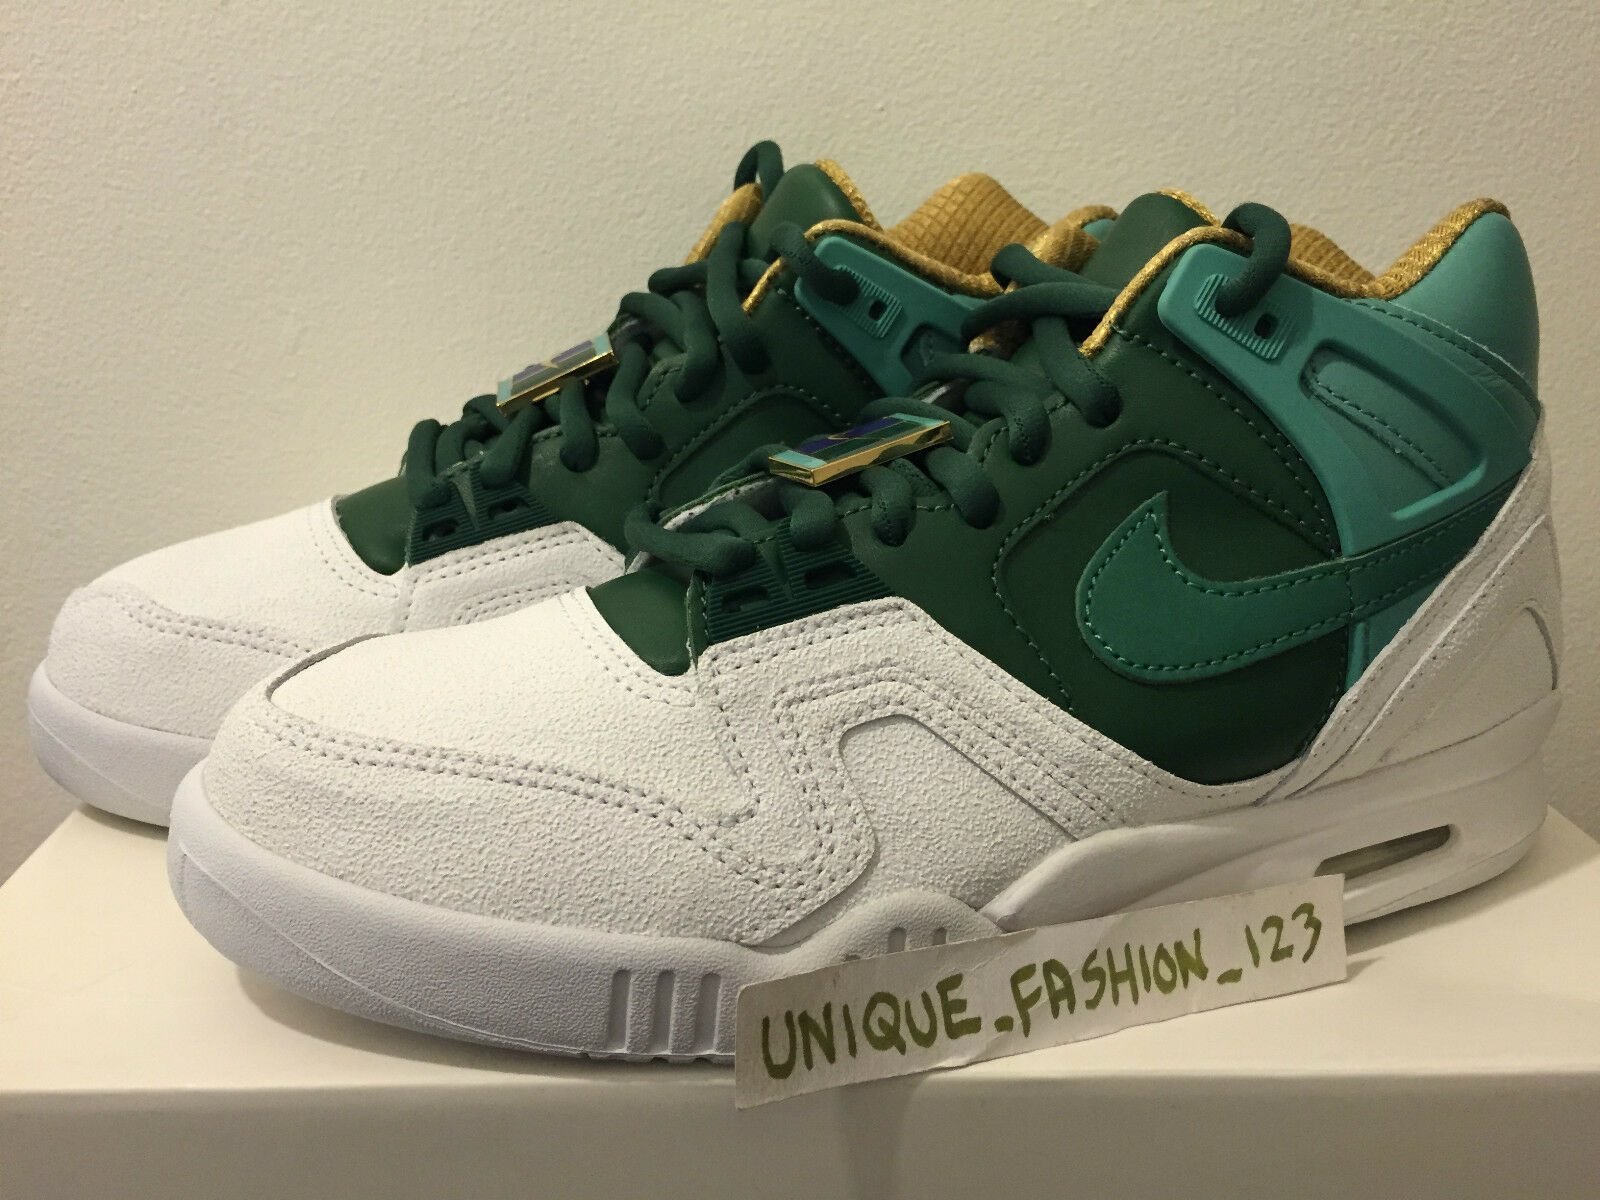 NIKE AIR TECH CHALLENGE 2 WIMBLEDON US 10.5 9.5 44.5 OPEN SP AUSTRALIAN AGASSI